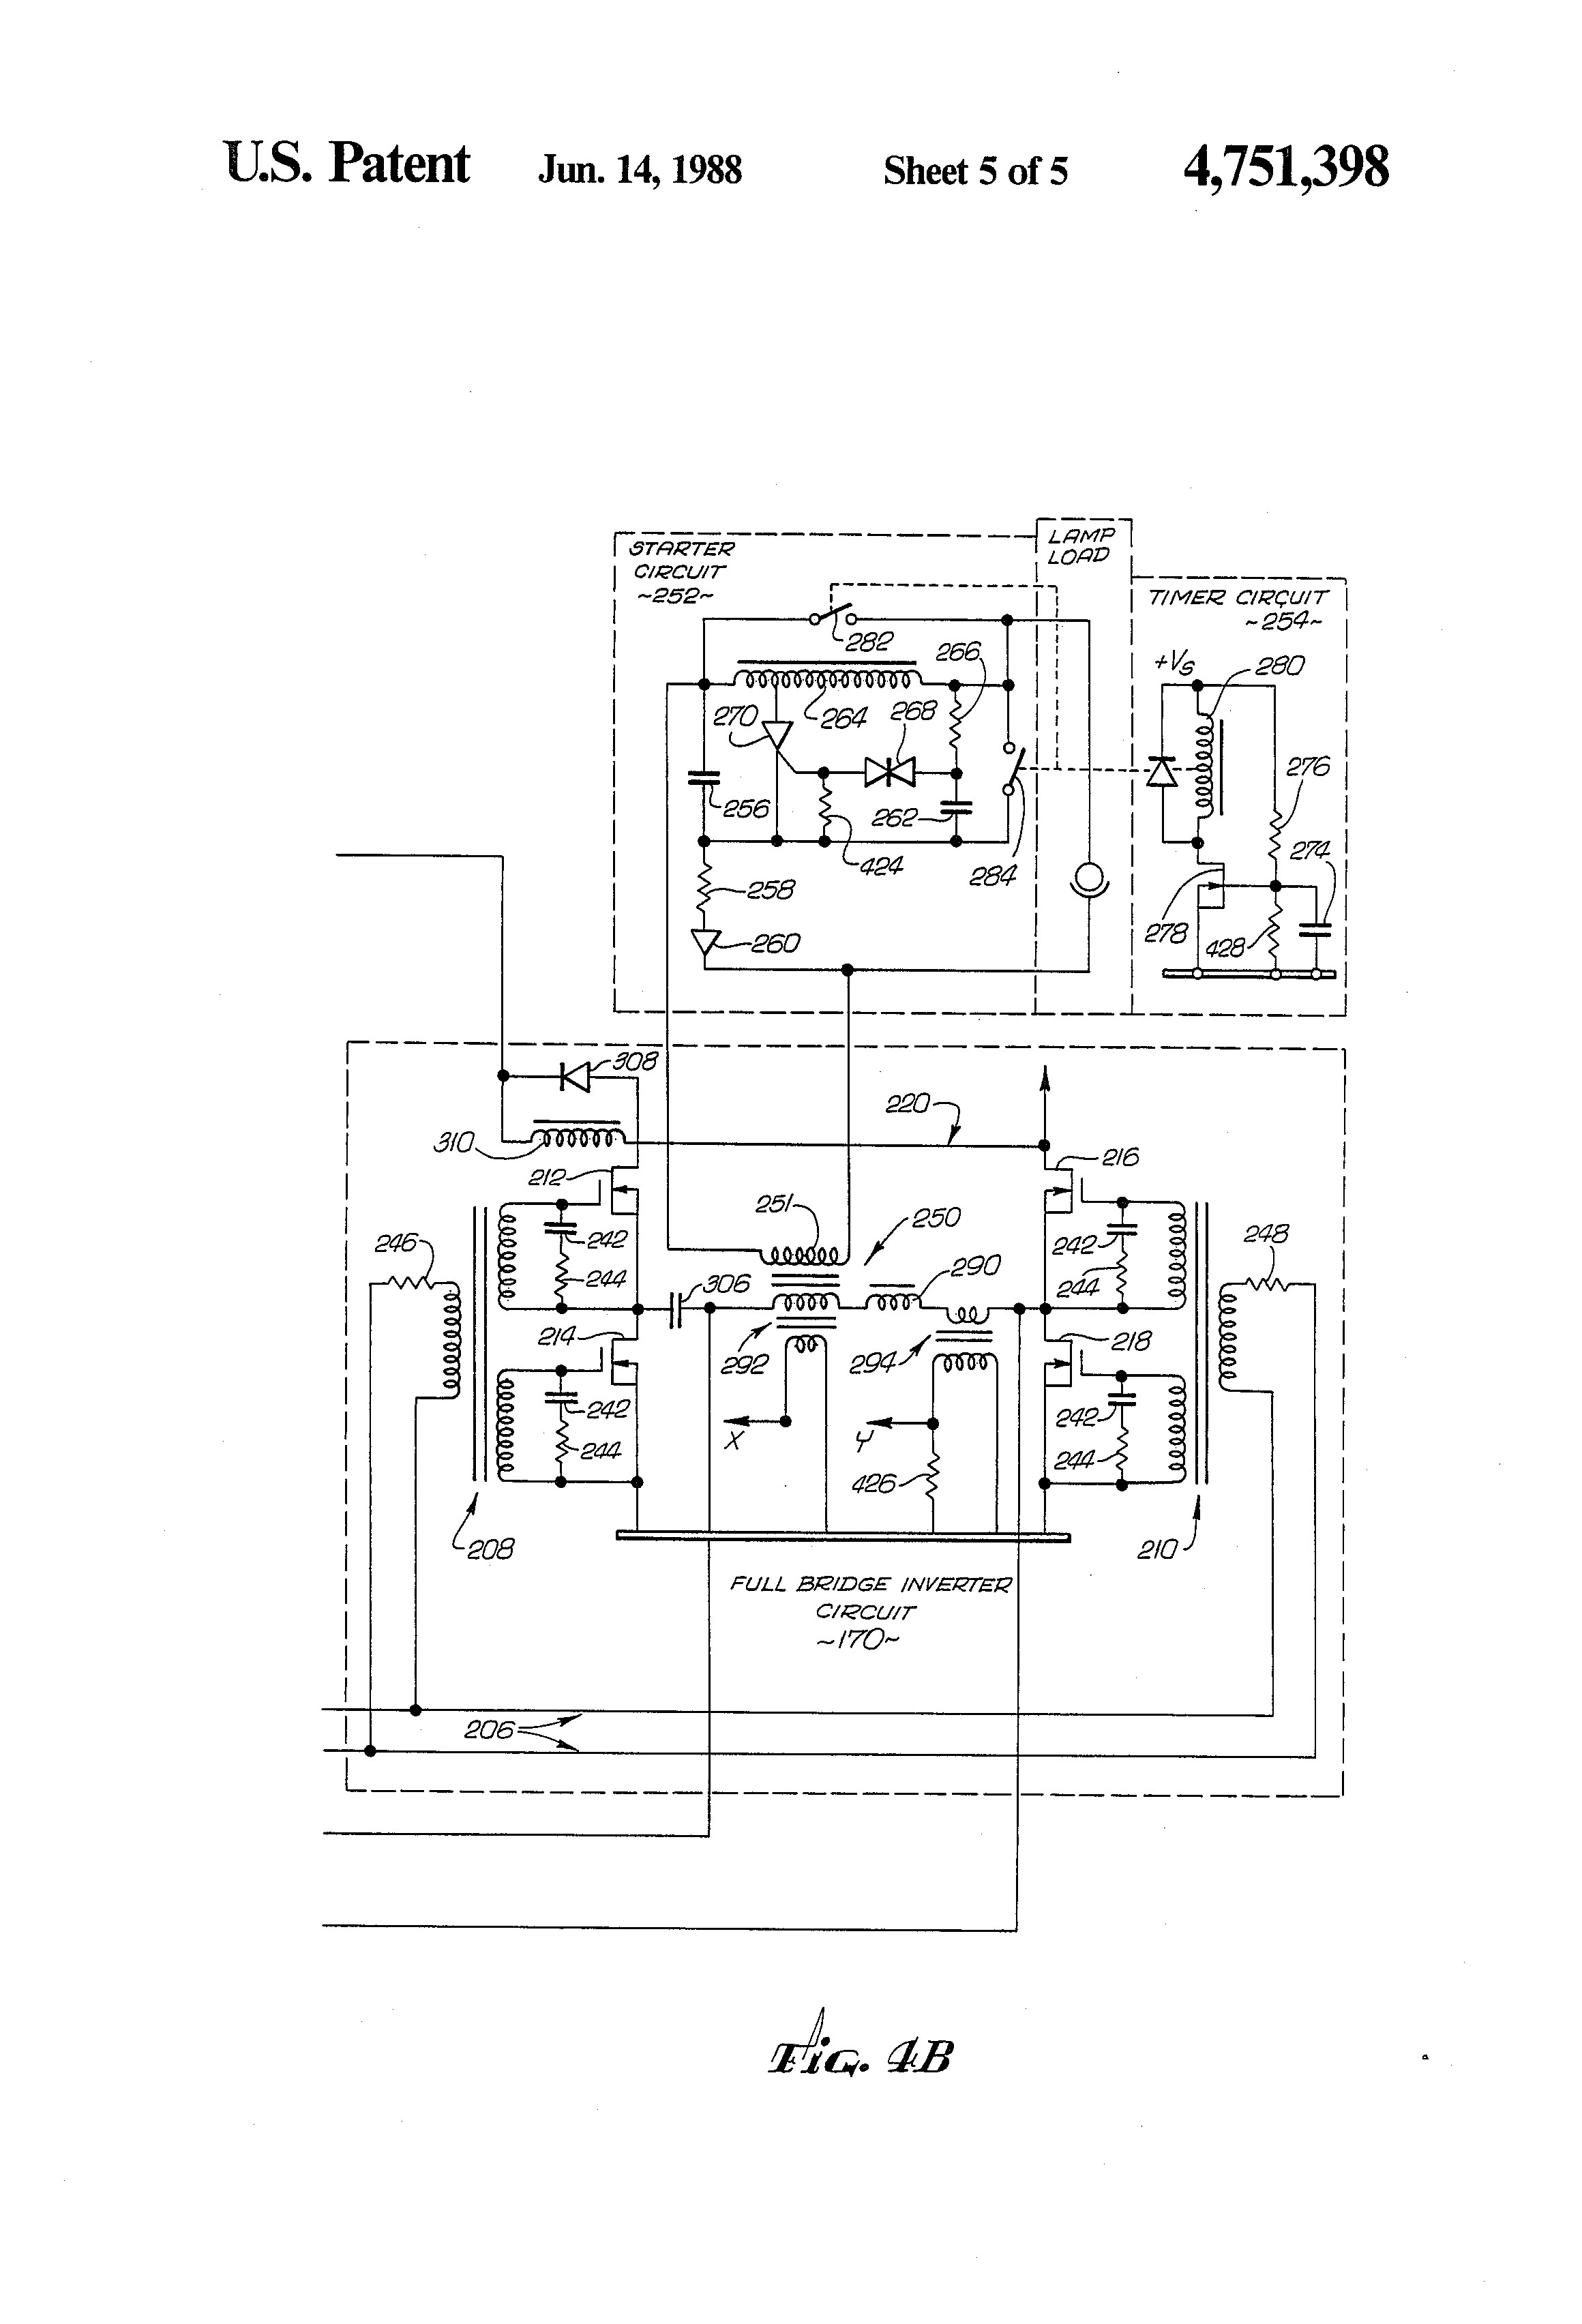 philips advance ballast wiring diagram Collection-Advance Ballast Wiring Diagram & Philips Advance Ballast Wiring Advance Ballast Wiring Diagram & Philips 17-n